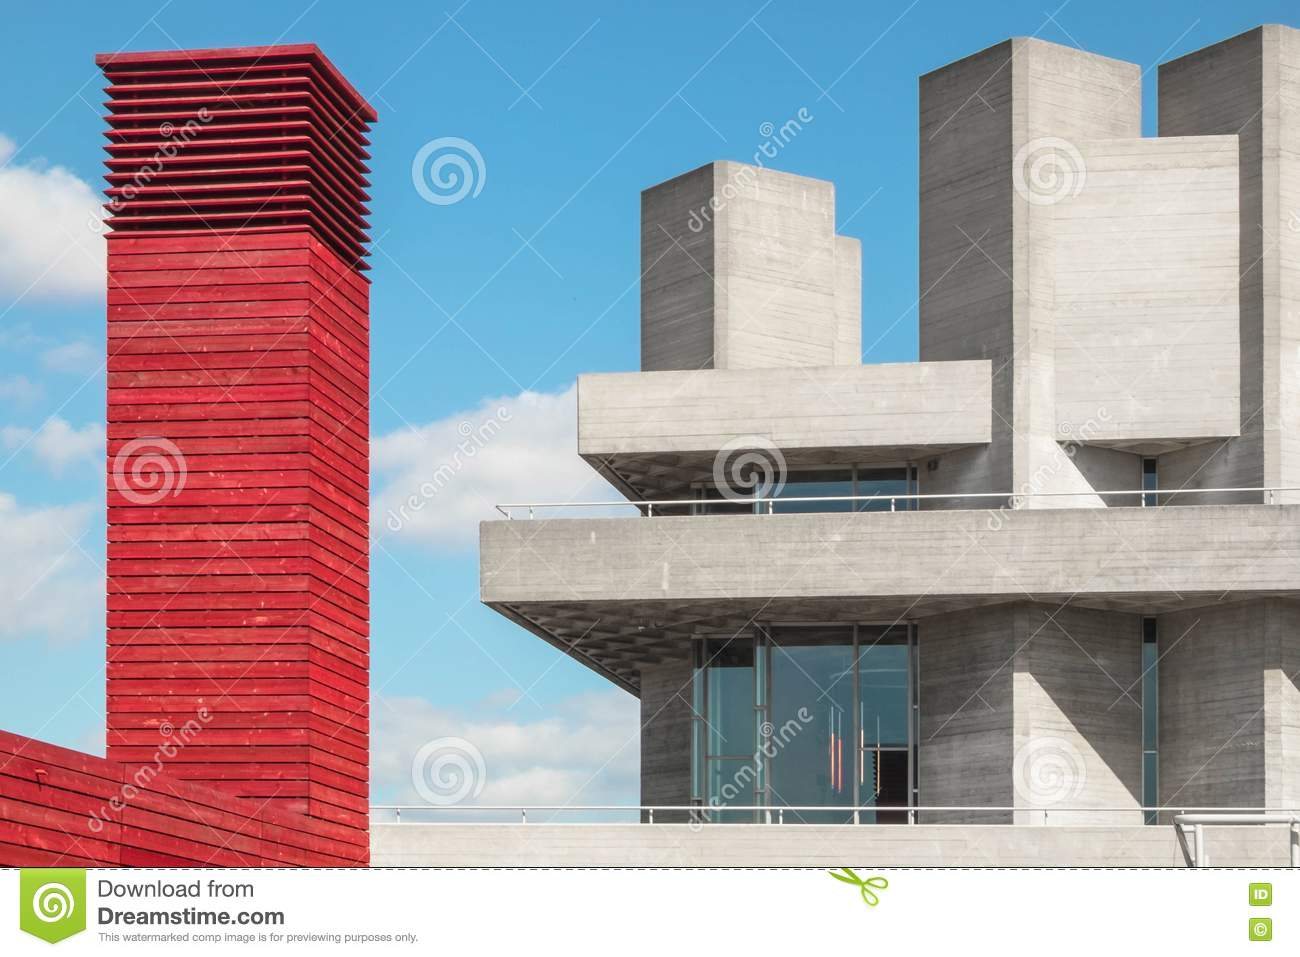 Red tower made of wood beside a concrete building with concrete towers and blue sky with white clouds